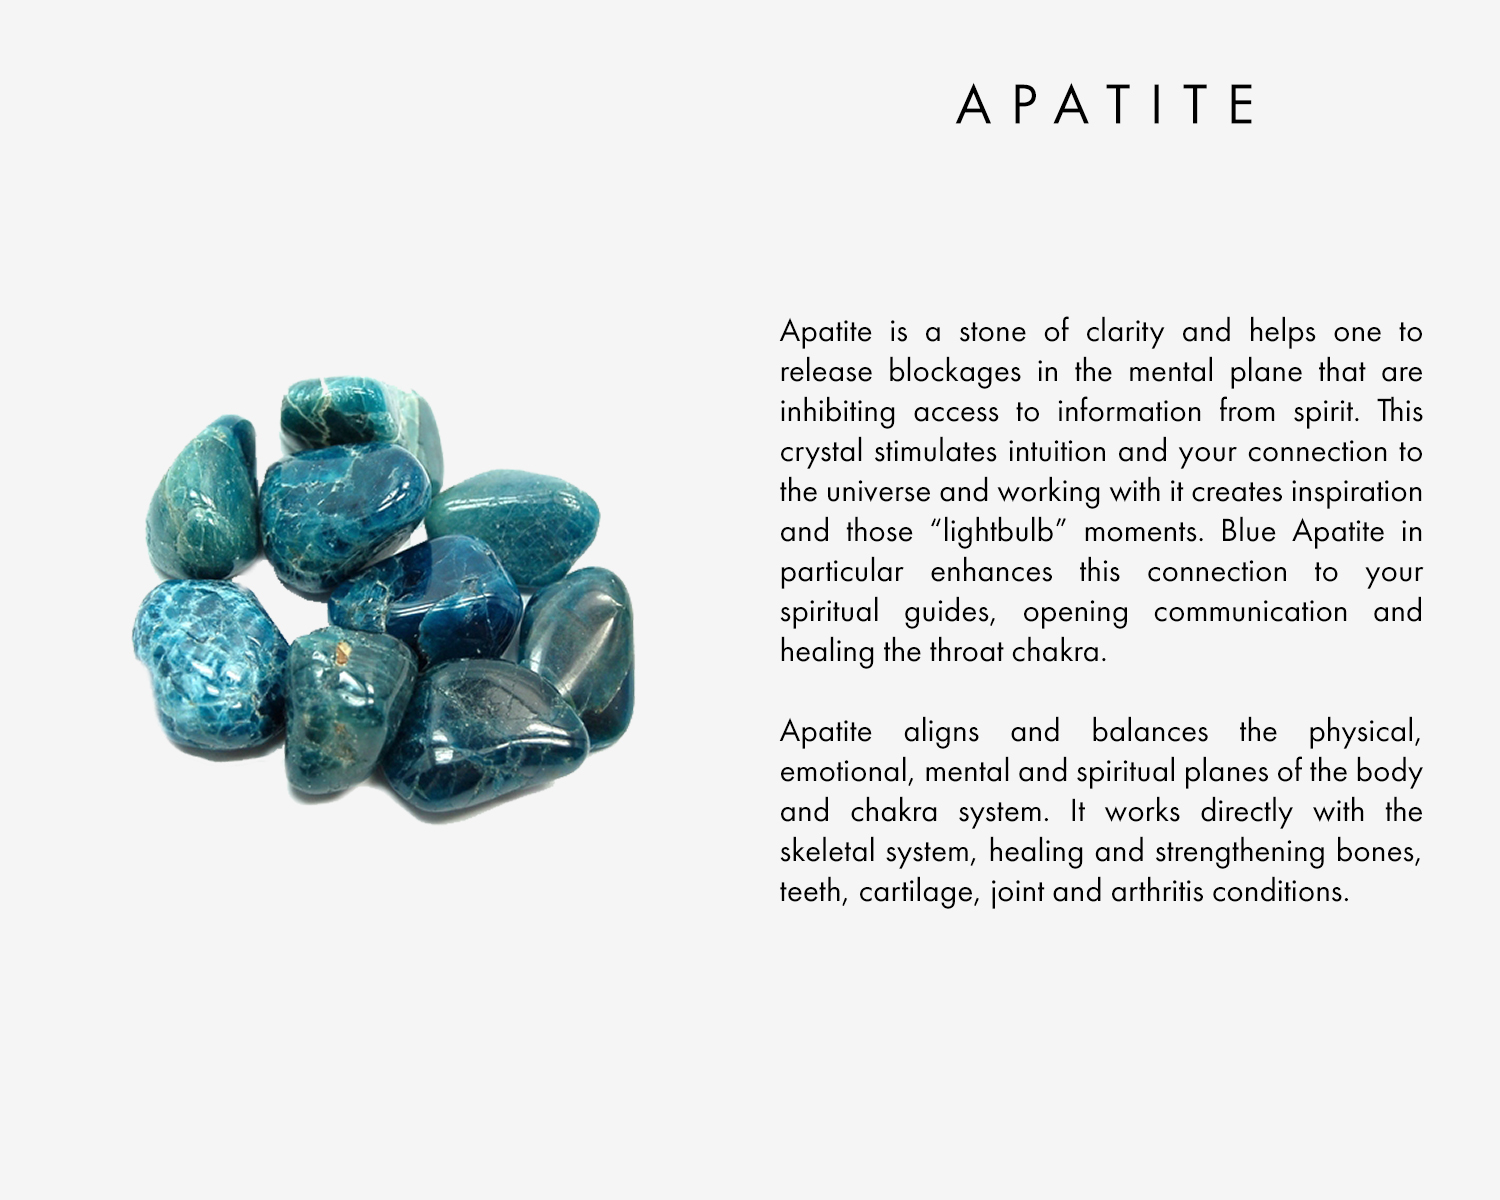 "Apatite is a stone of clarity and helps one to release blockages in the mental plane that are inhibiting access to information from spirit. This crystal stimulates intuition and your connection to the universe and working with it creates inspiration and those ""lightbulb"" moments. Blue Apatite in particular enhances this connection to your spiritual guides, opening communication and healing the throat chakra.  Apatite aligns and balances the physical, emotional, mental and spiritual planes of the body and chakra system. It works directly with the skeletal system, healing and strengthening bones, teeth, cartilage, joint and arthritis conditions."